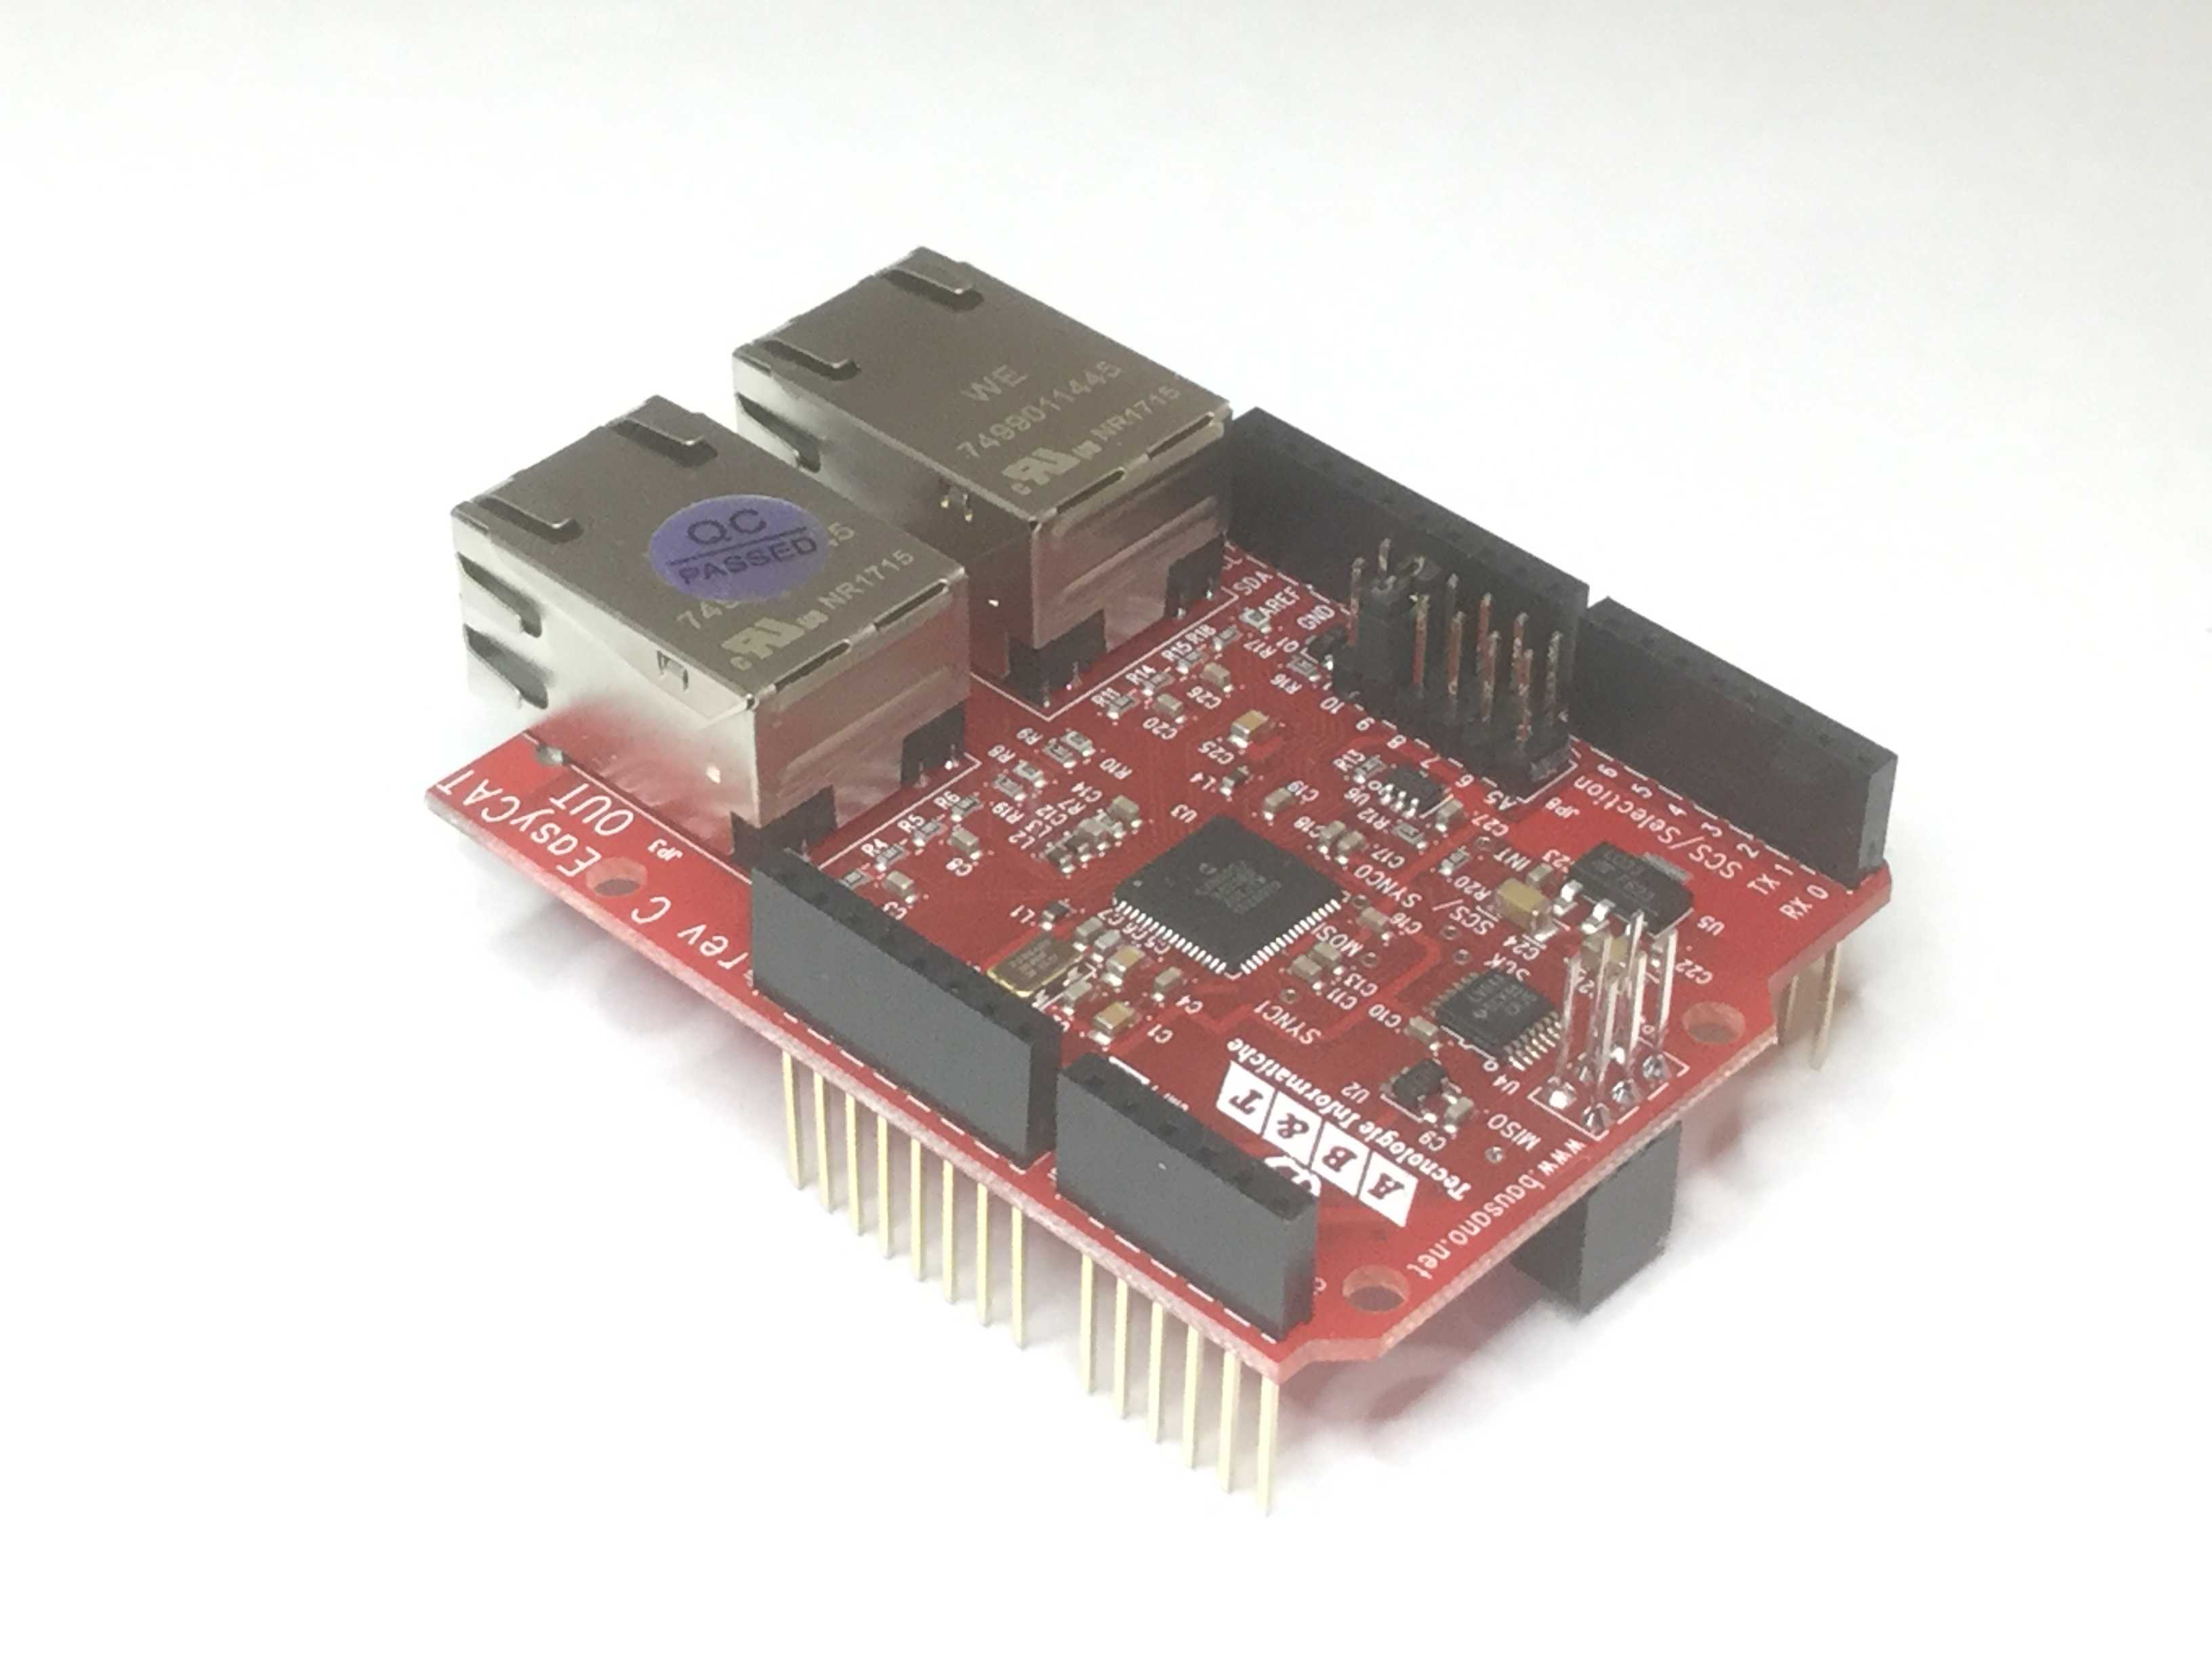 Ethercat And Arduino Arduinocircuitboardjpg The Easycat Shield Uses 3x2 Spi Connector To Communicate With Microcontroller This Is Standard On All Boards But Some